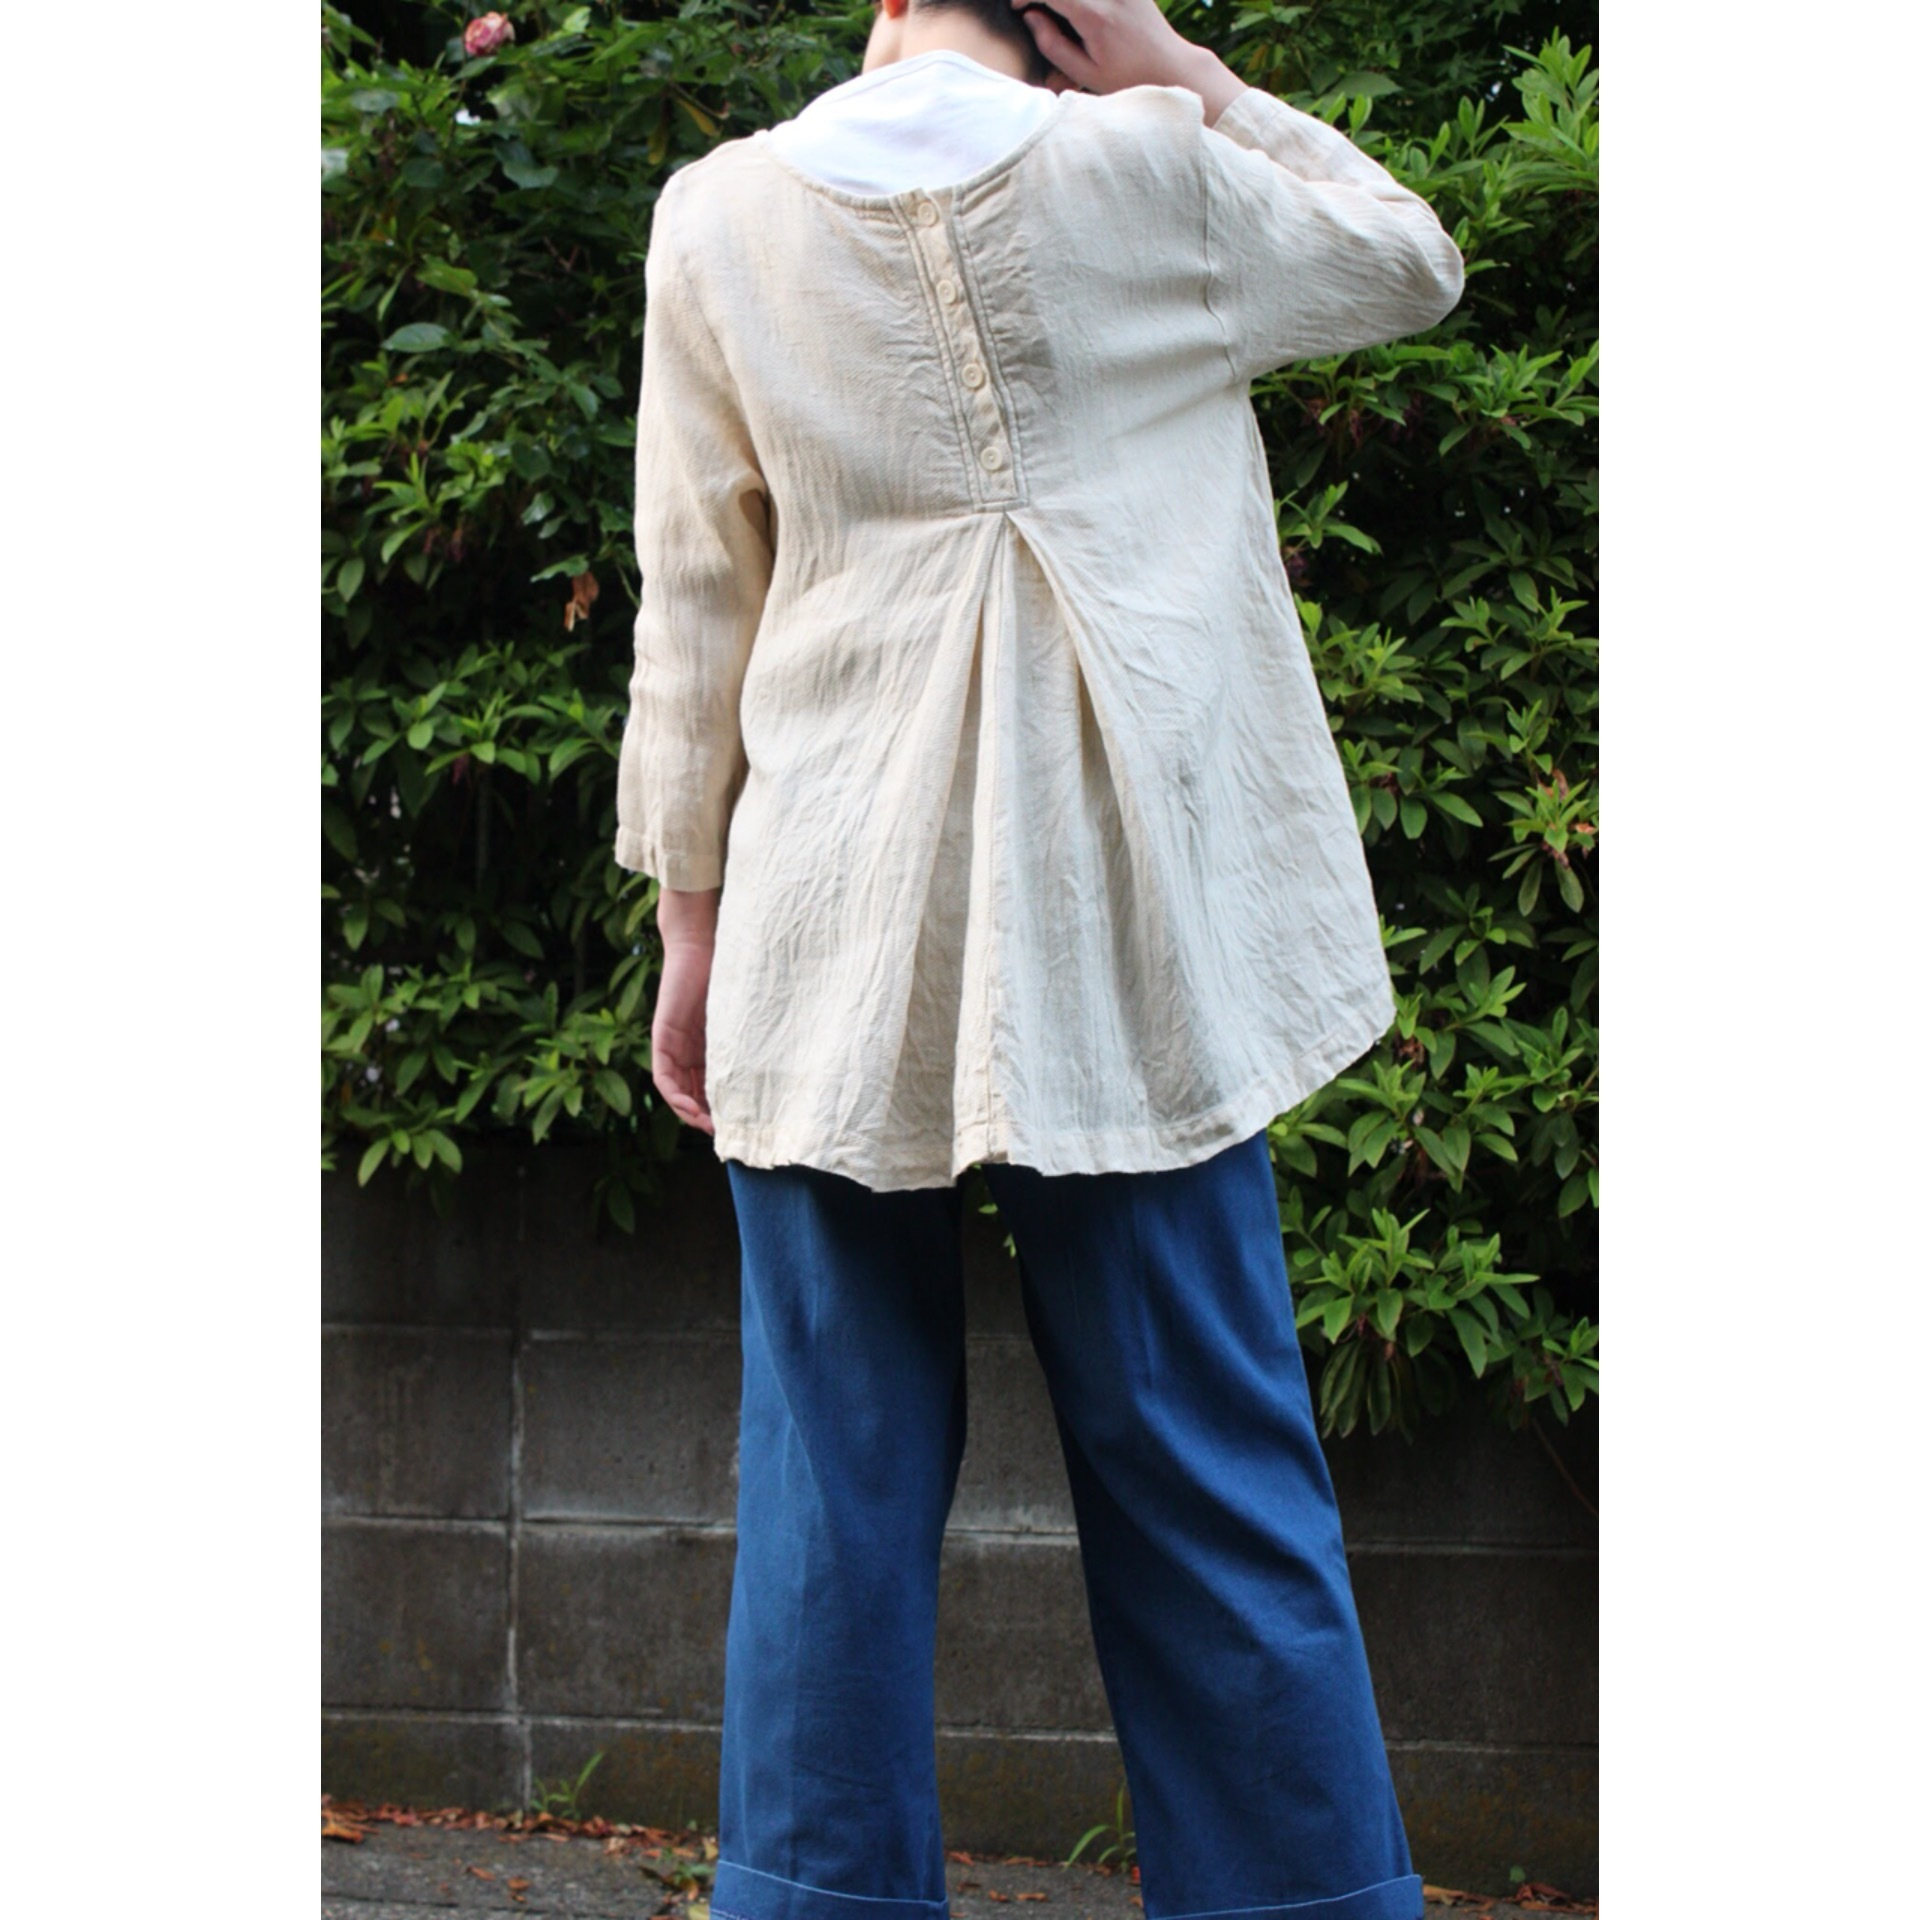 Vintage linen pullover shirt by FLAX